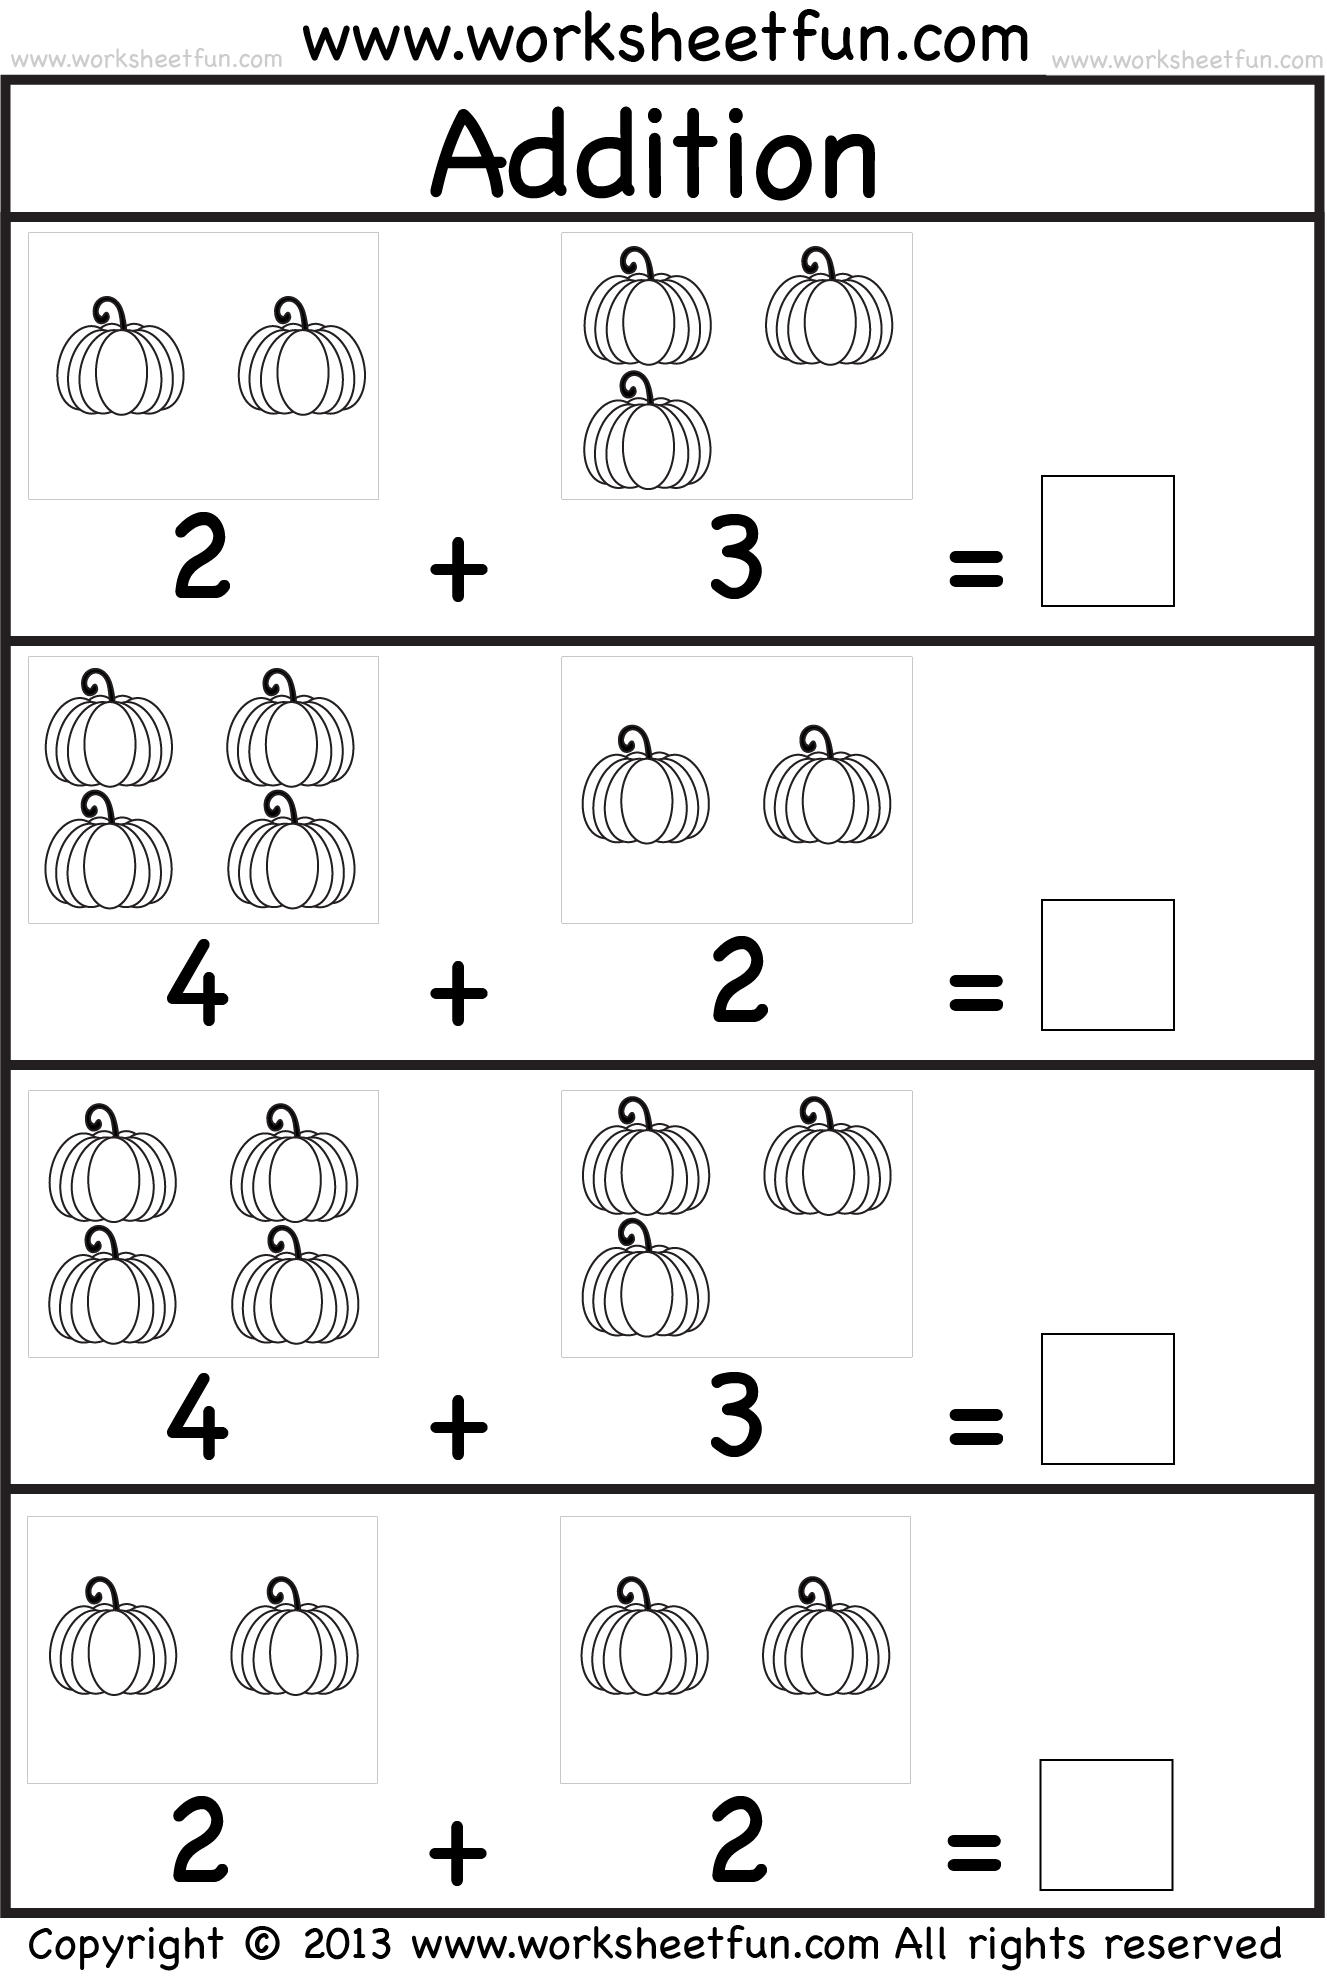 Worksheet Kinder Addition Worksheets kindergarten addition games for smartboard html pumpkin picture worksheet free